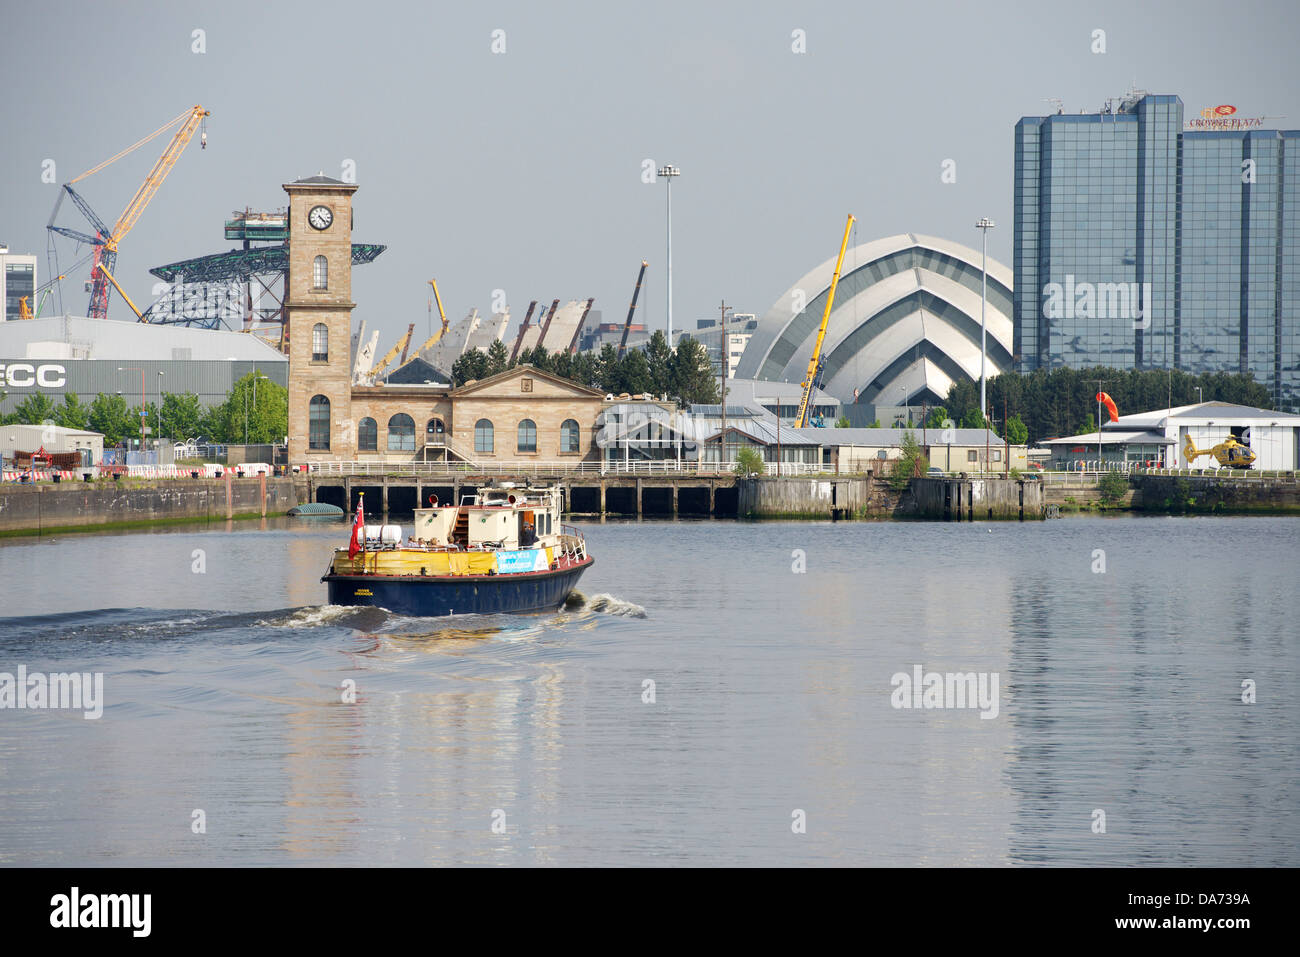 The River Clyde at Finnieston, Glasgow. - Stock Image